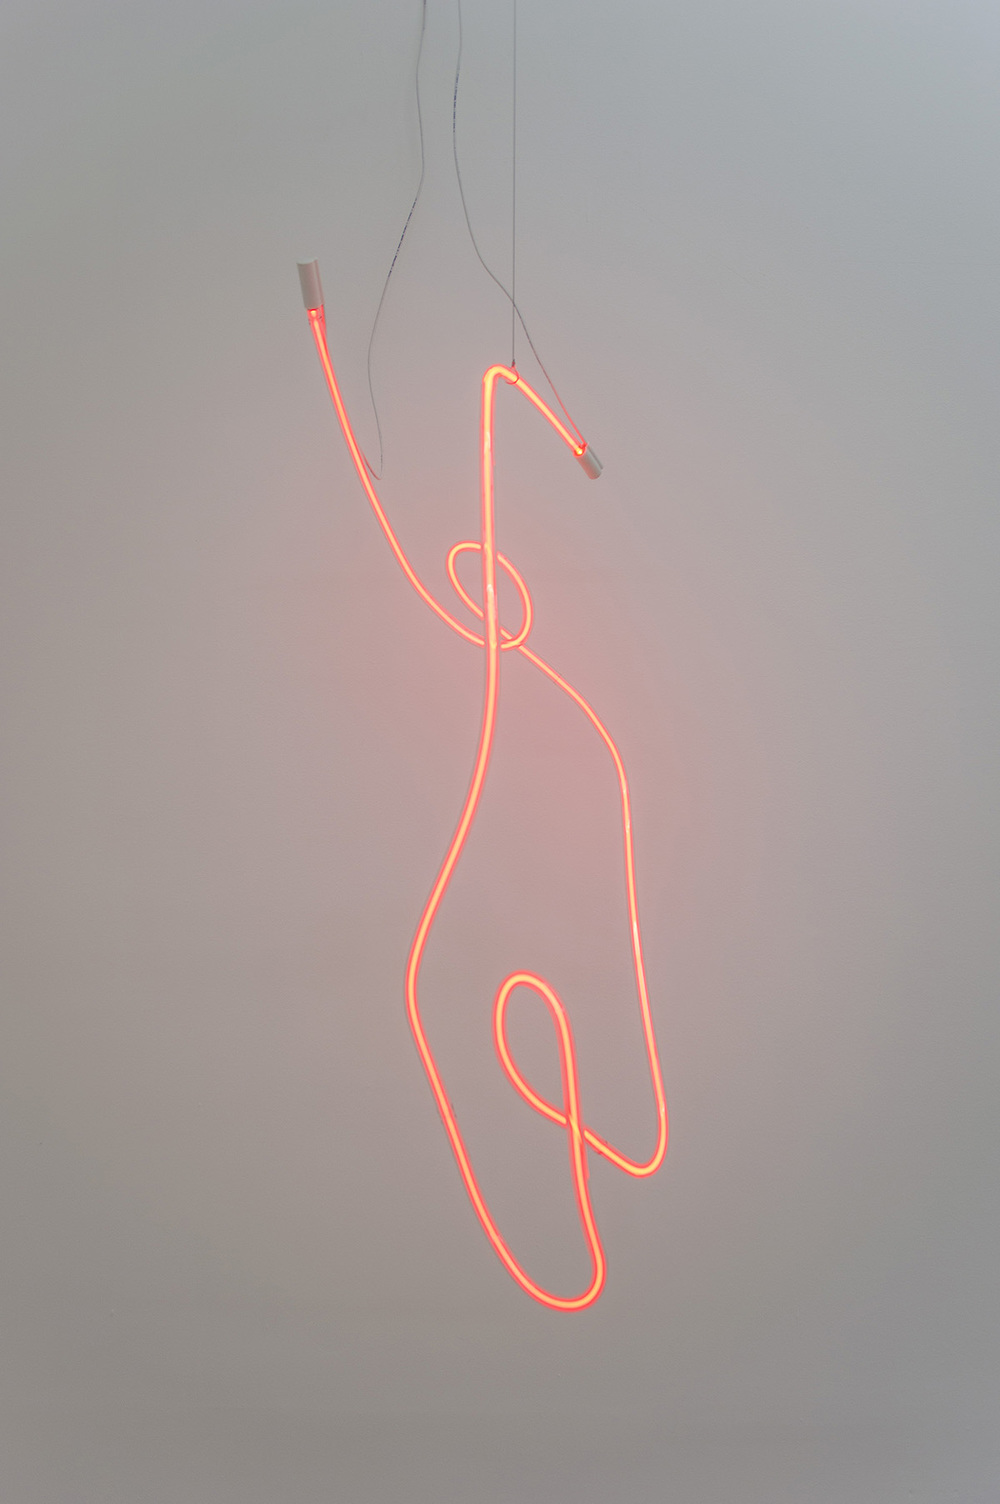 Psippha  2014 Dimensions variable Neon light